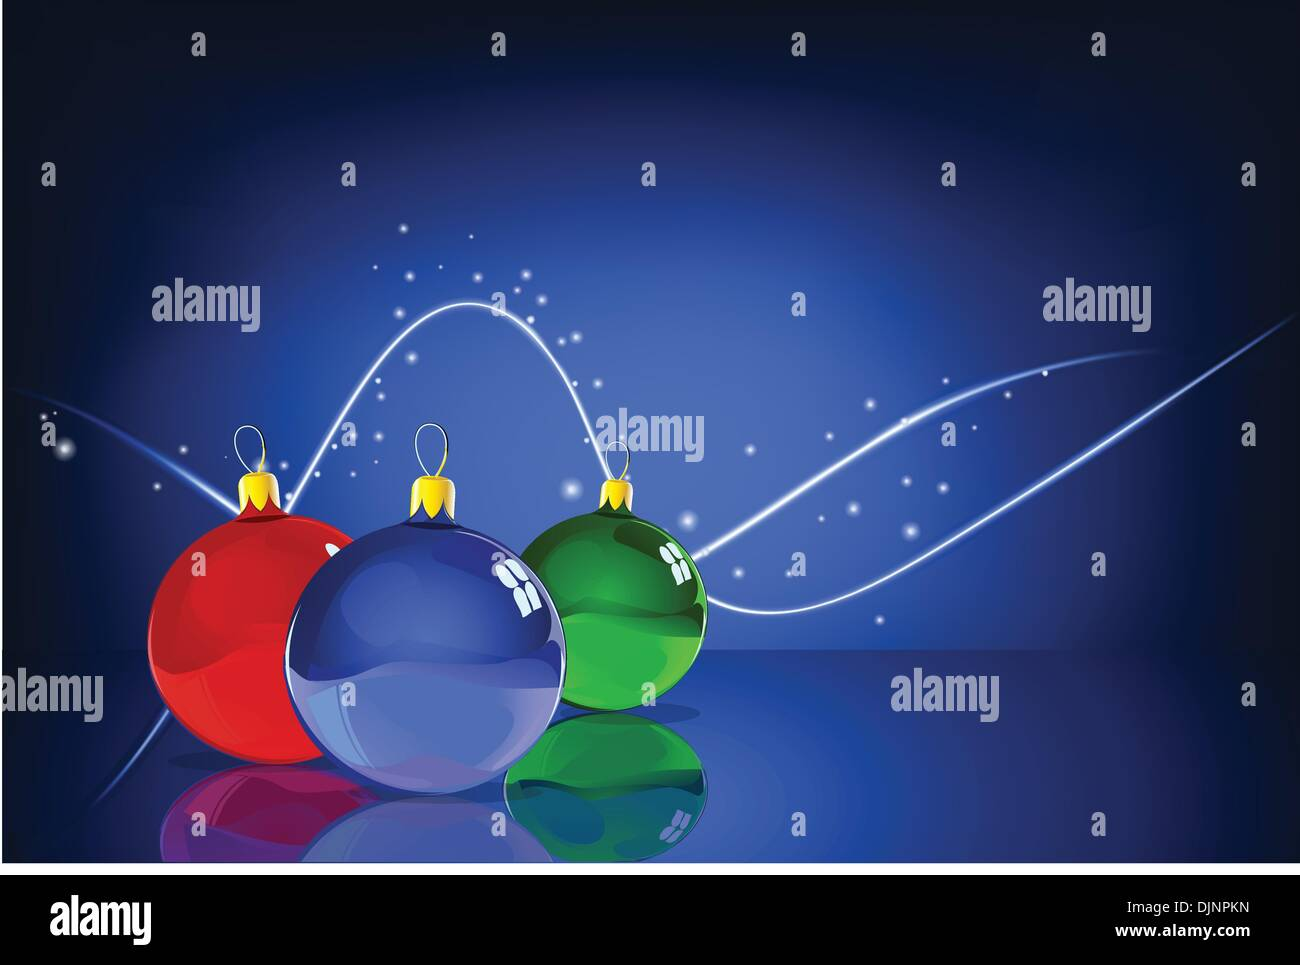 Vector Illustration of three Christmas Balls with reflections on the blue Abstract lines background - Stock Vector